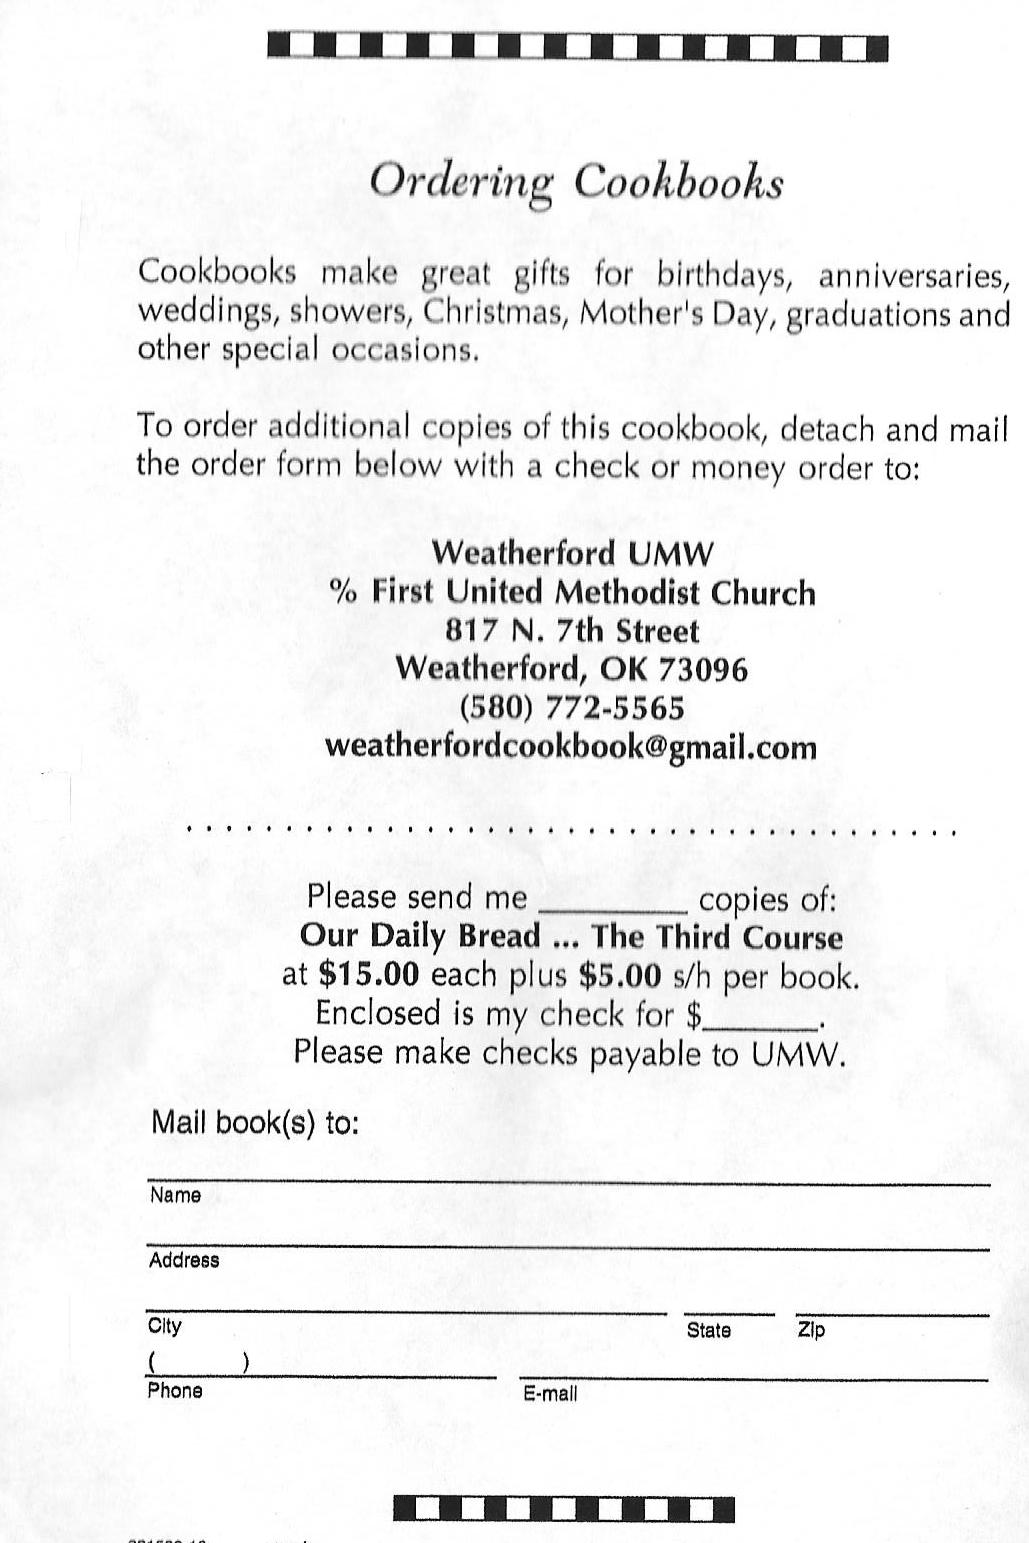 umw cookbook order form